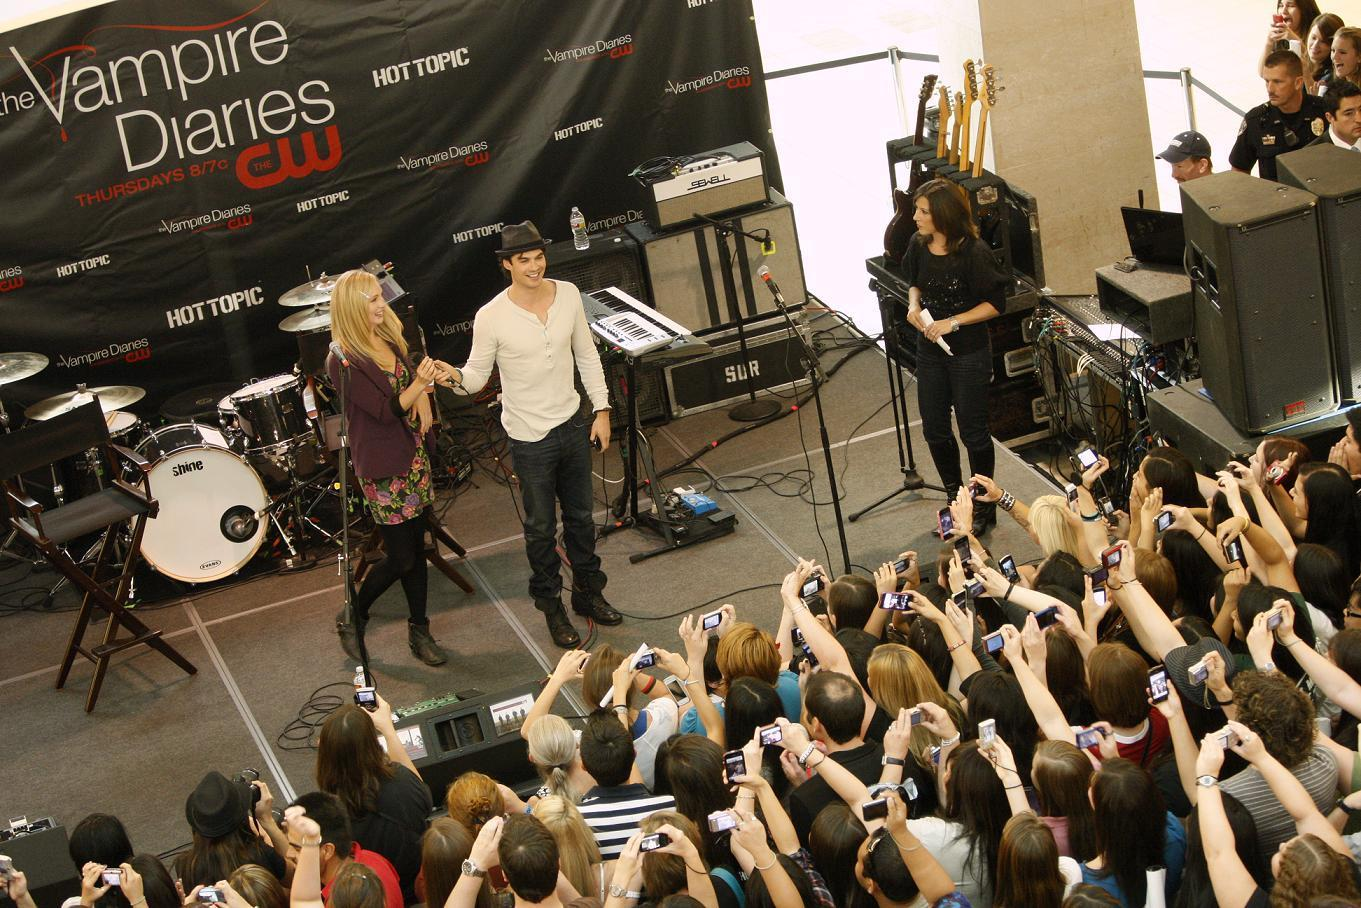 http://images4.fanpop.com/image/photos/16200000/Hot-Topic-Tour-in-Texas-the-vampire-diaries-16246872-1361-908.jpg